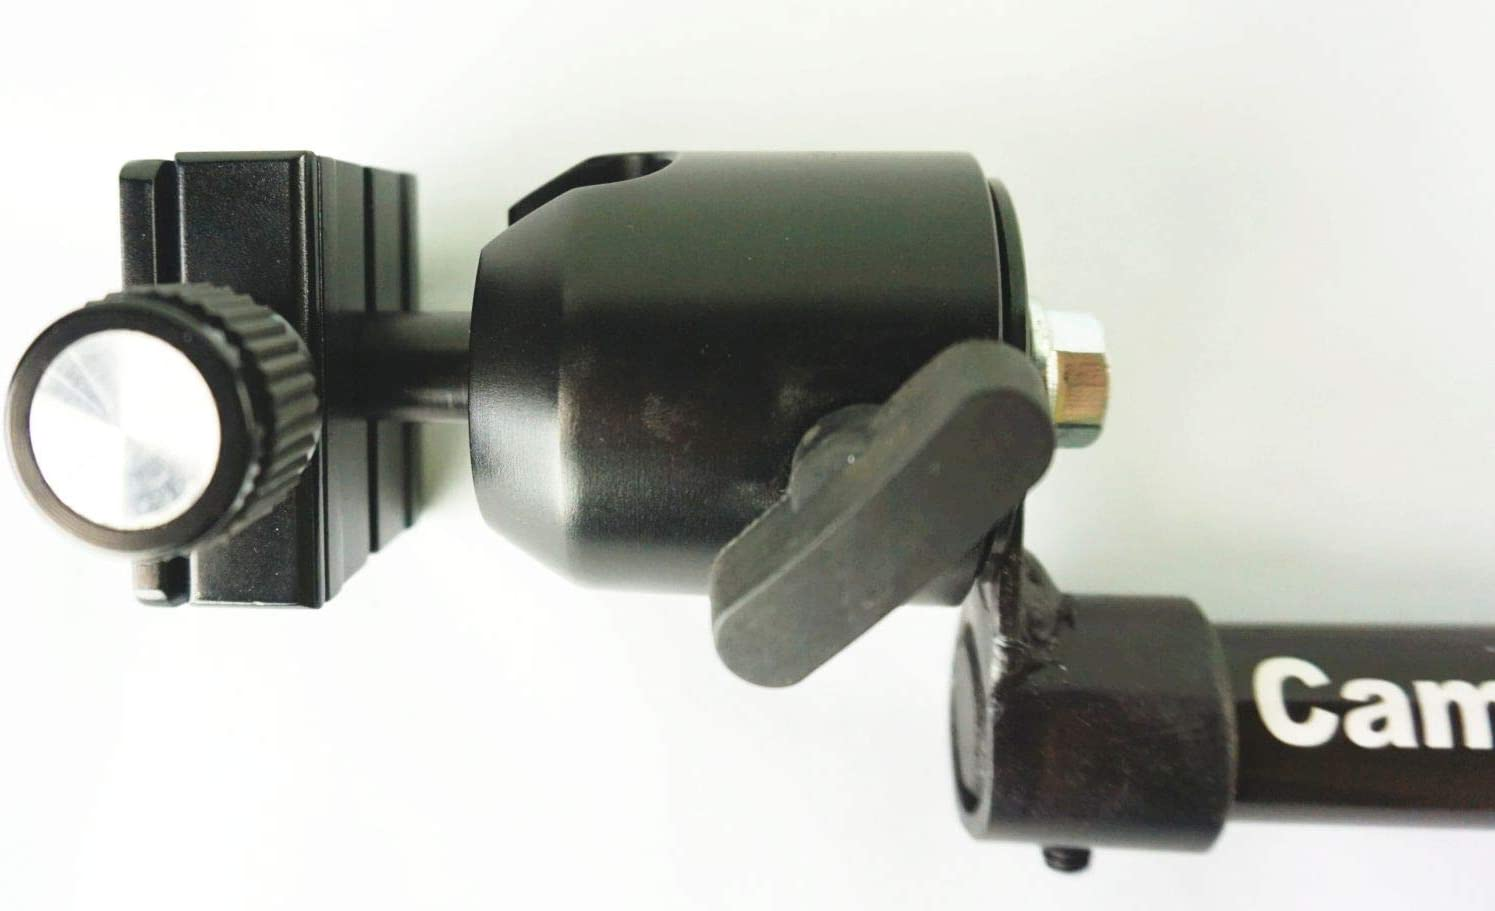 CamStand ProClamp